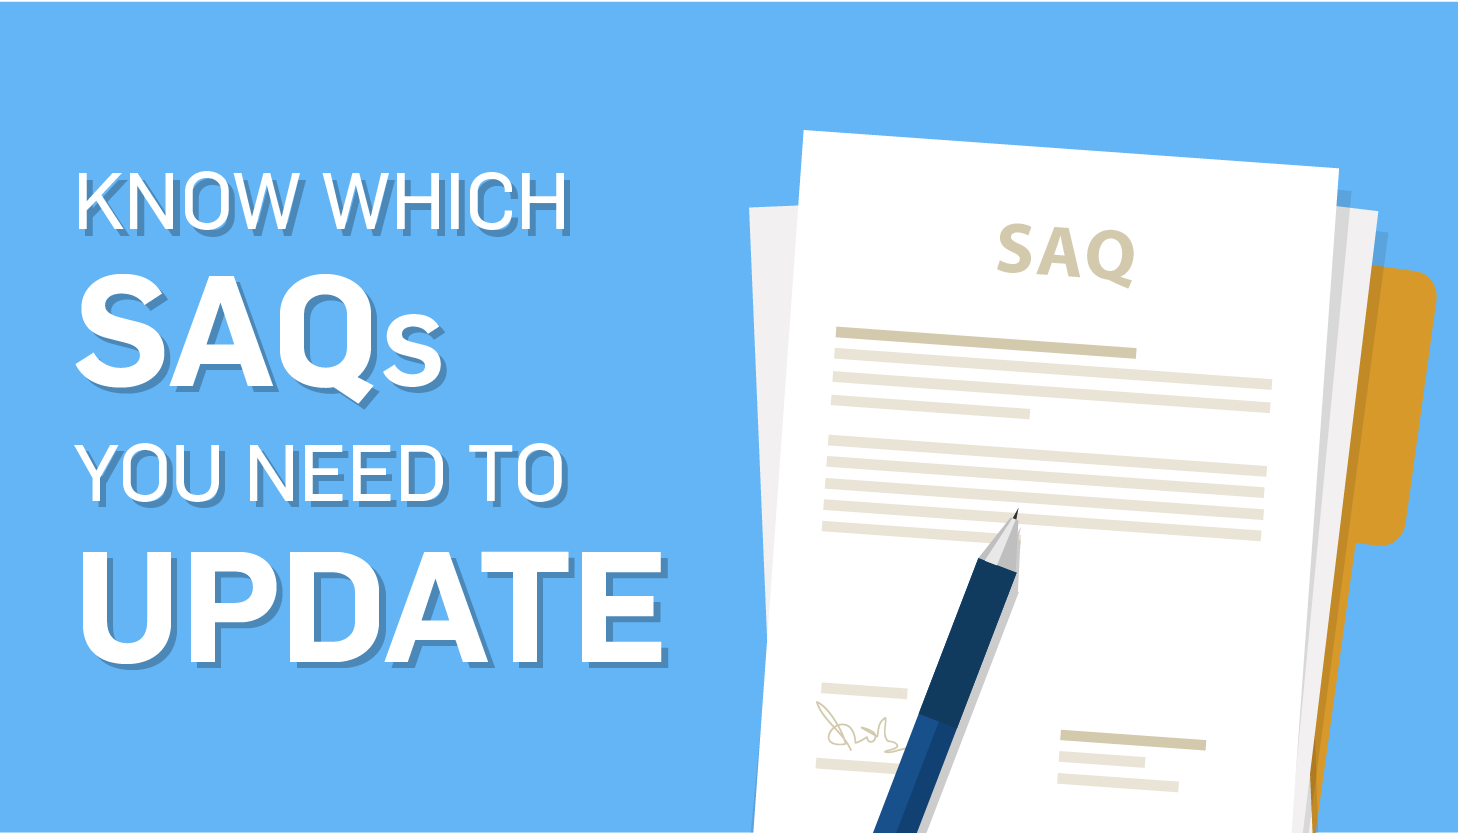 Updating to PCI 3.2 SAQs: The Changes You Should Know